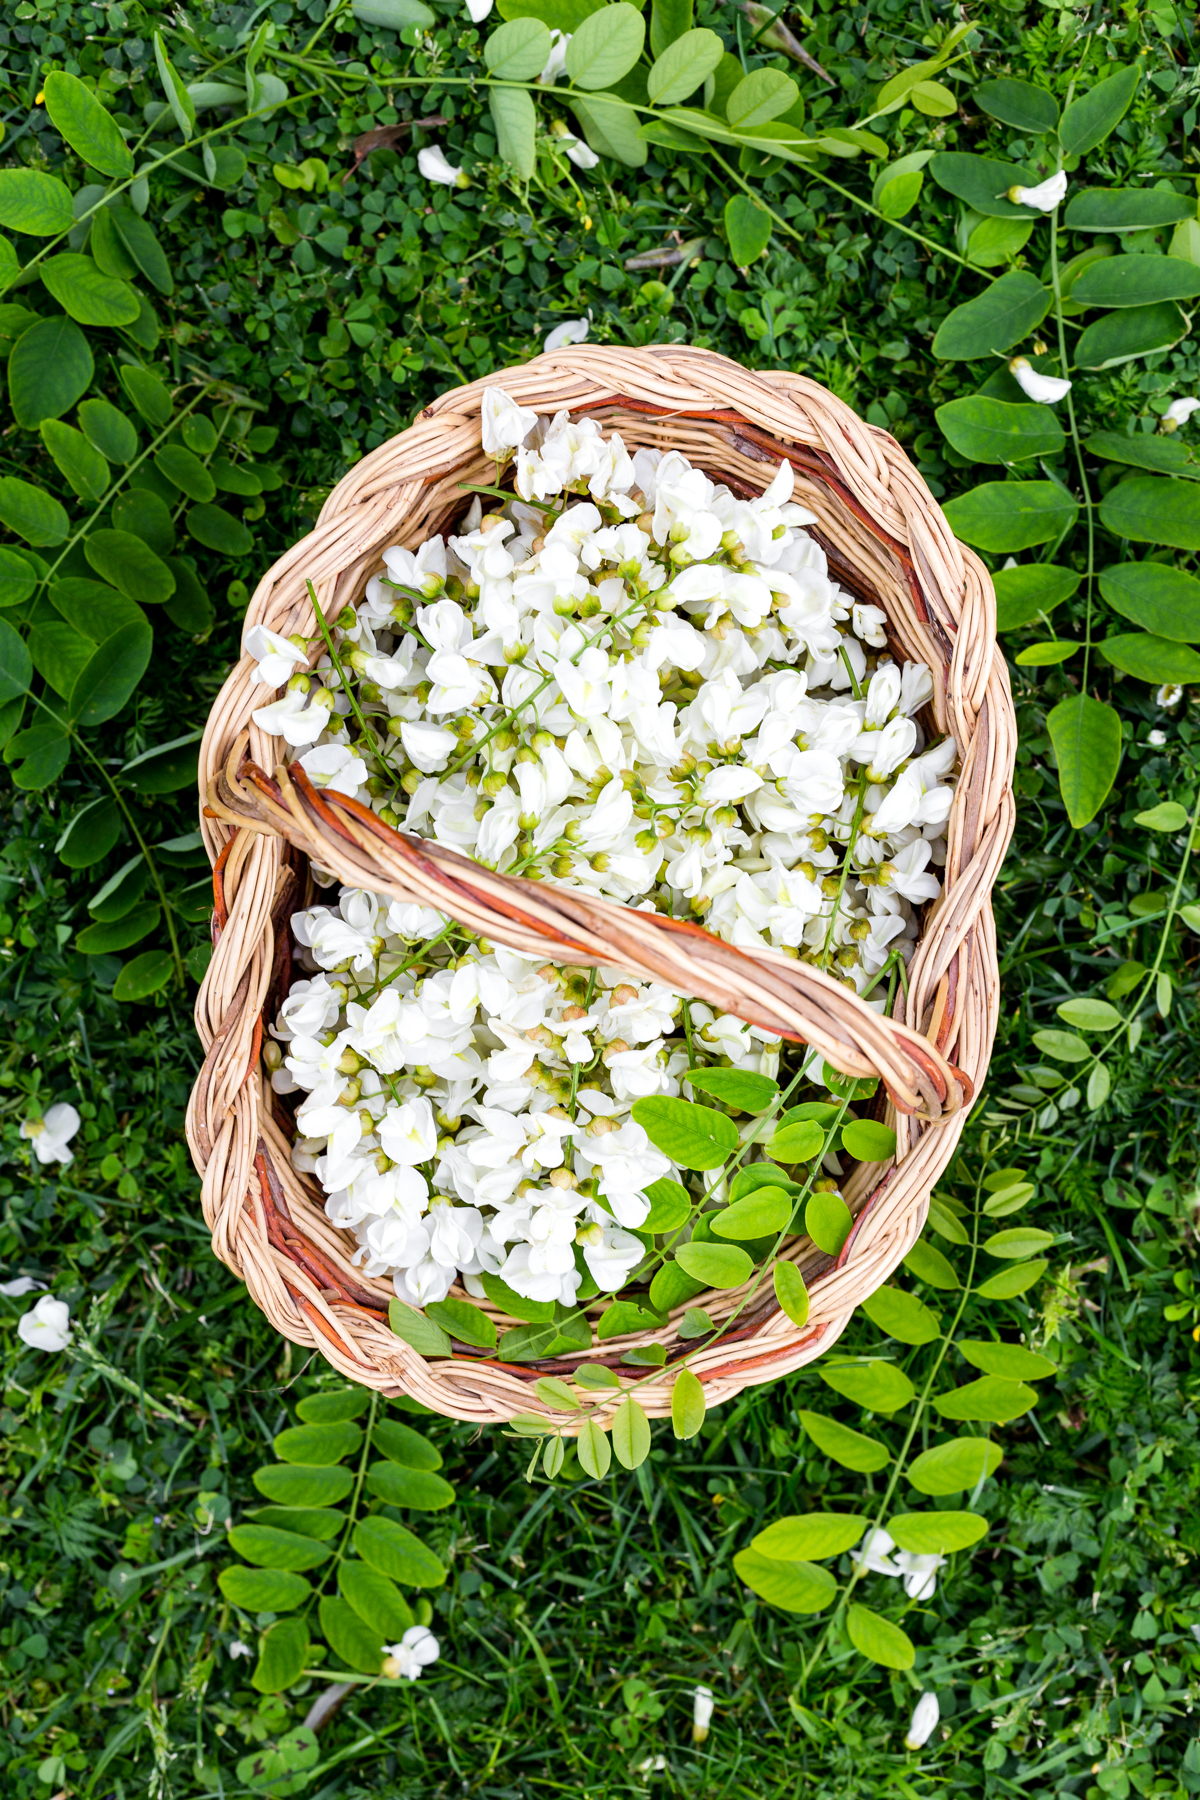 black locust flowers in basket